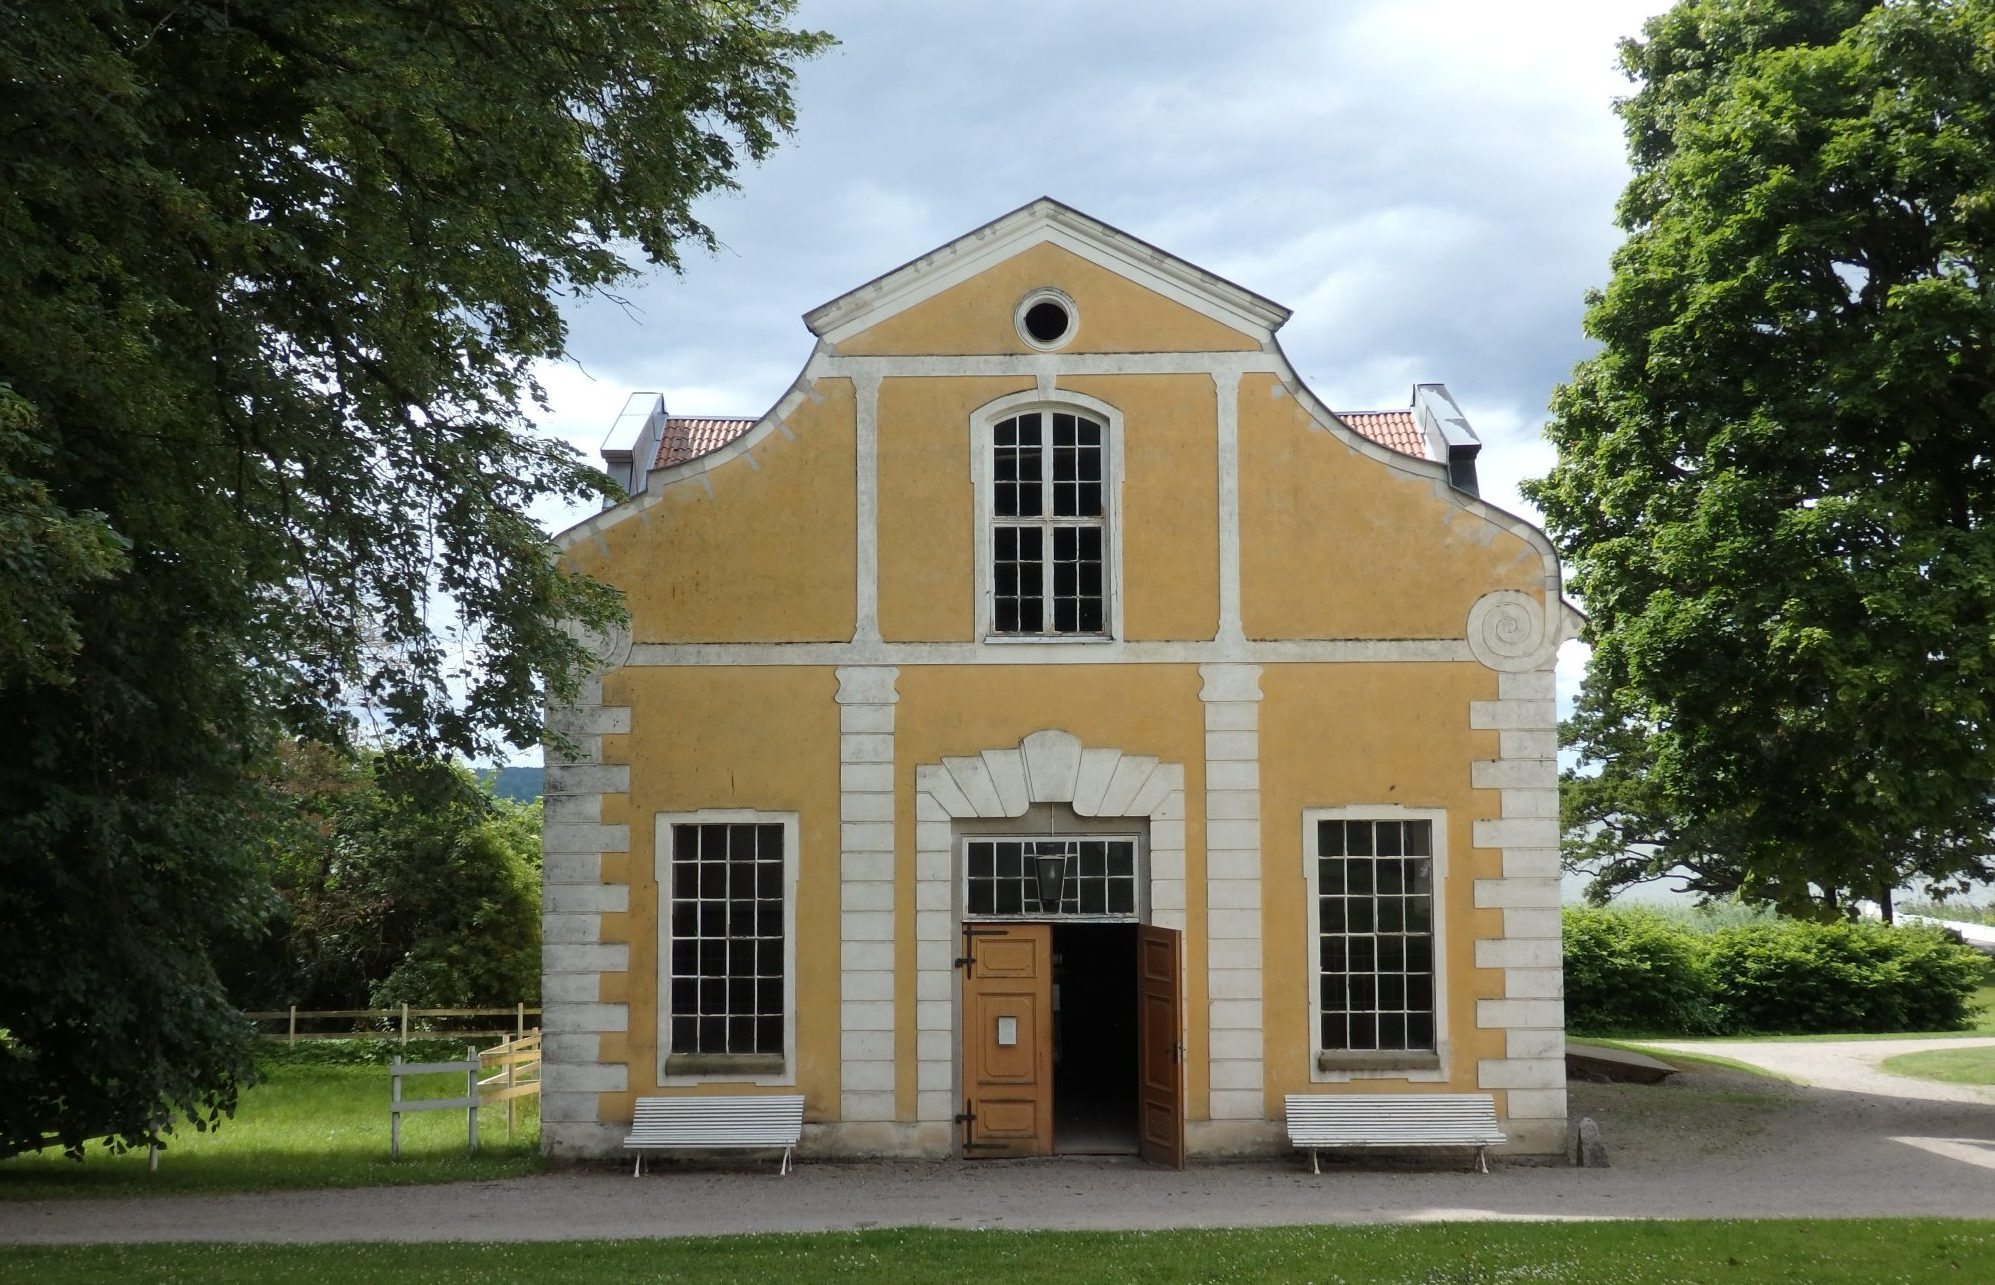 One of the original buildings at Julita estate